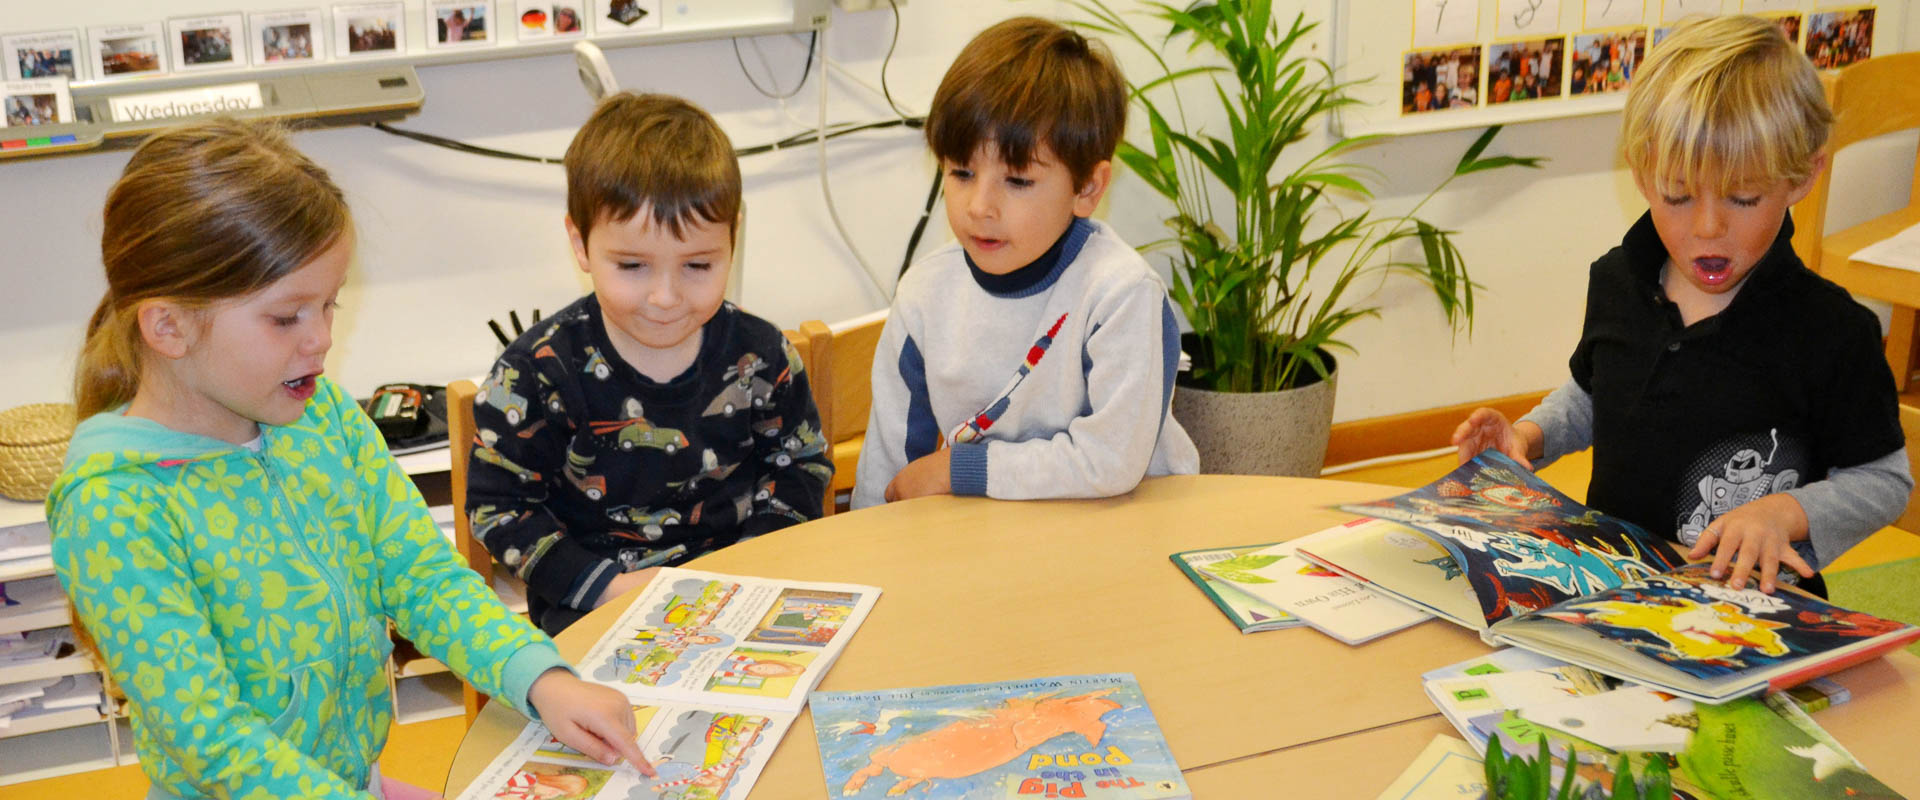 preschool/kindergarten/early years students learning english supported by the english as an additional language (EAL) programme, international school